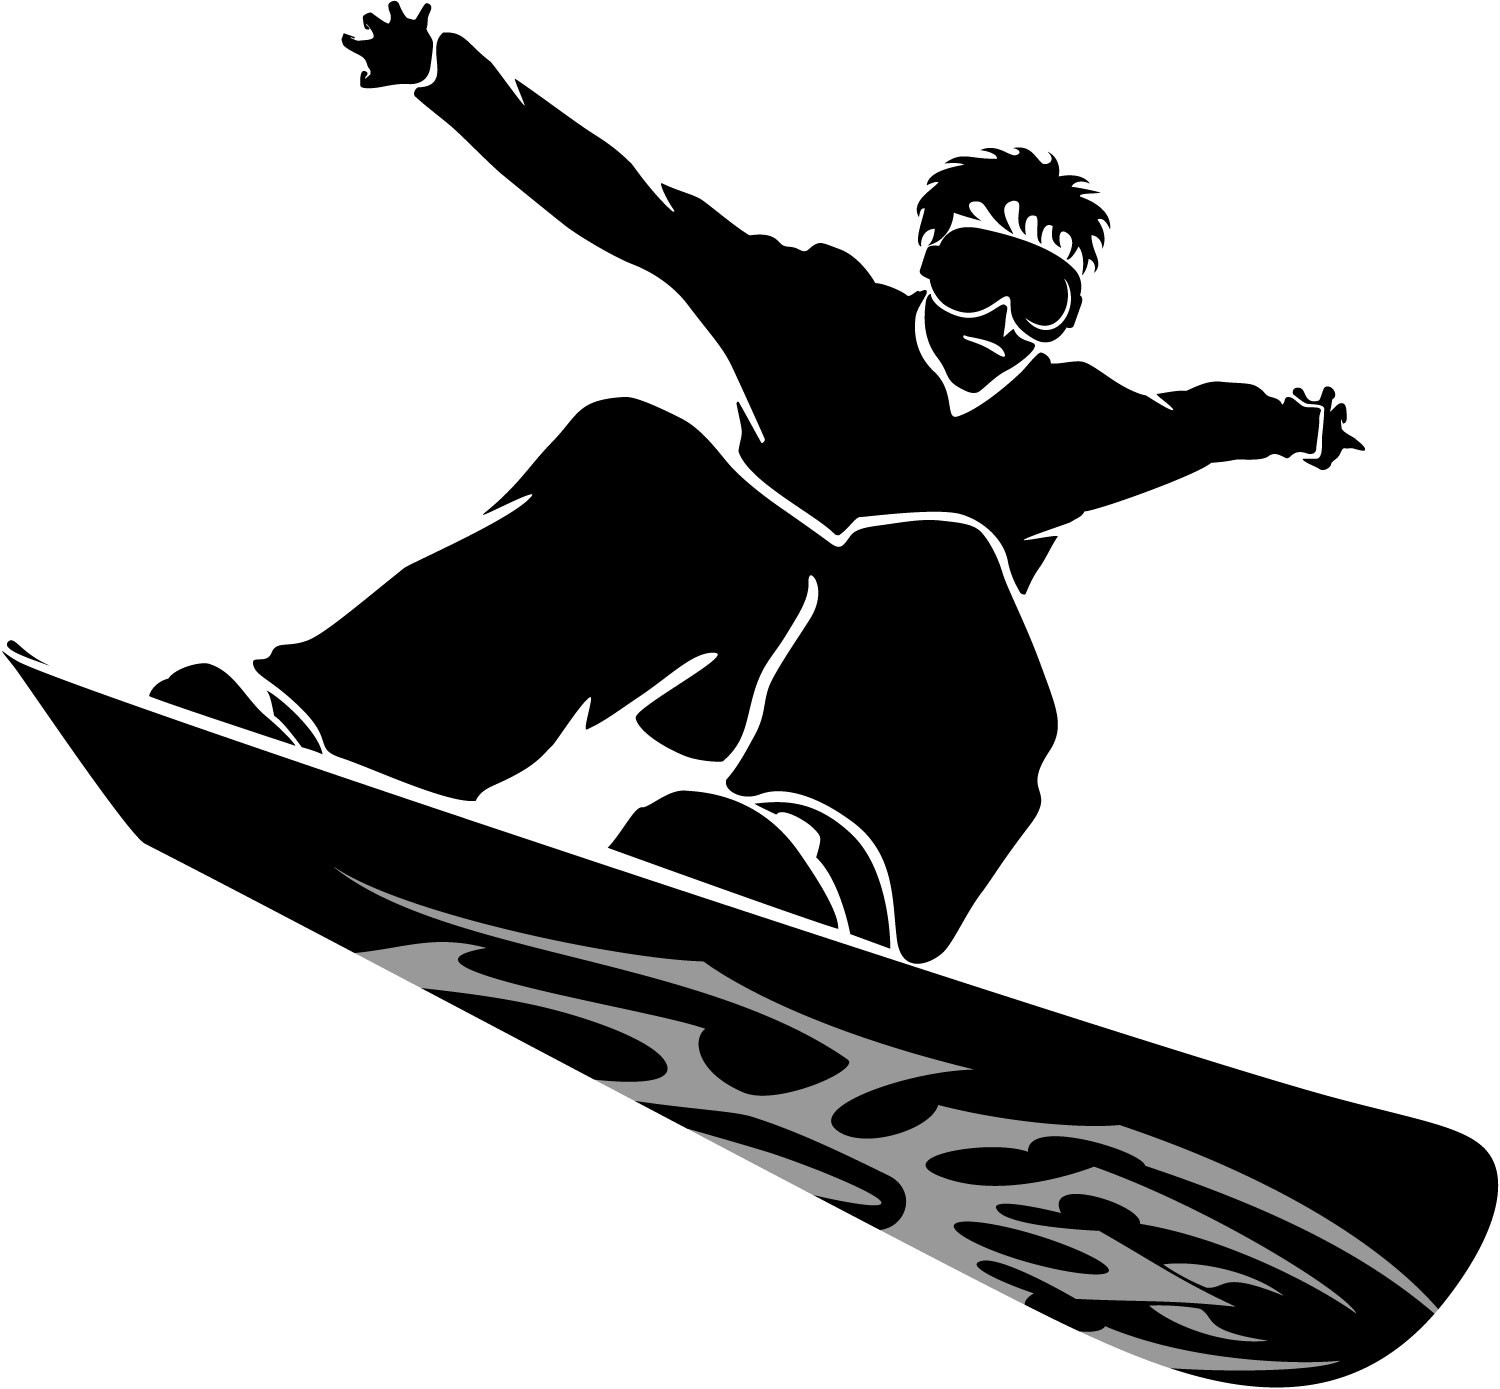 White snowboard clipart image free stock Snowboard Clipart | salaharness.org image free stock